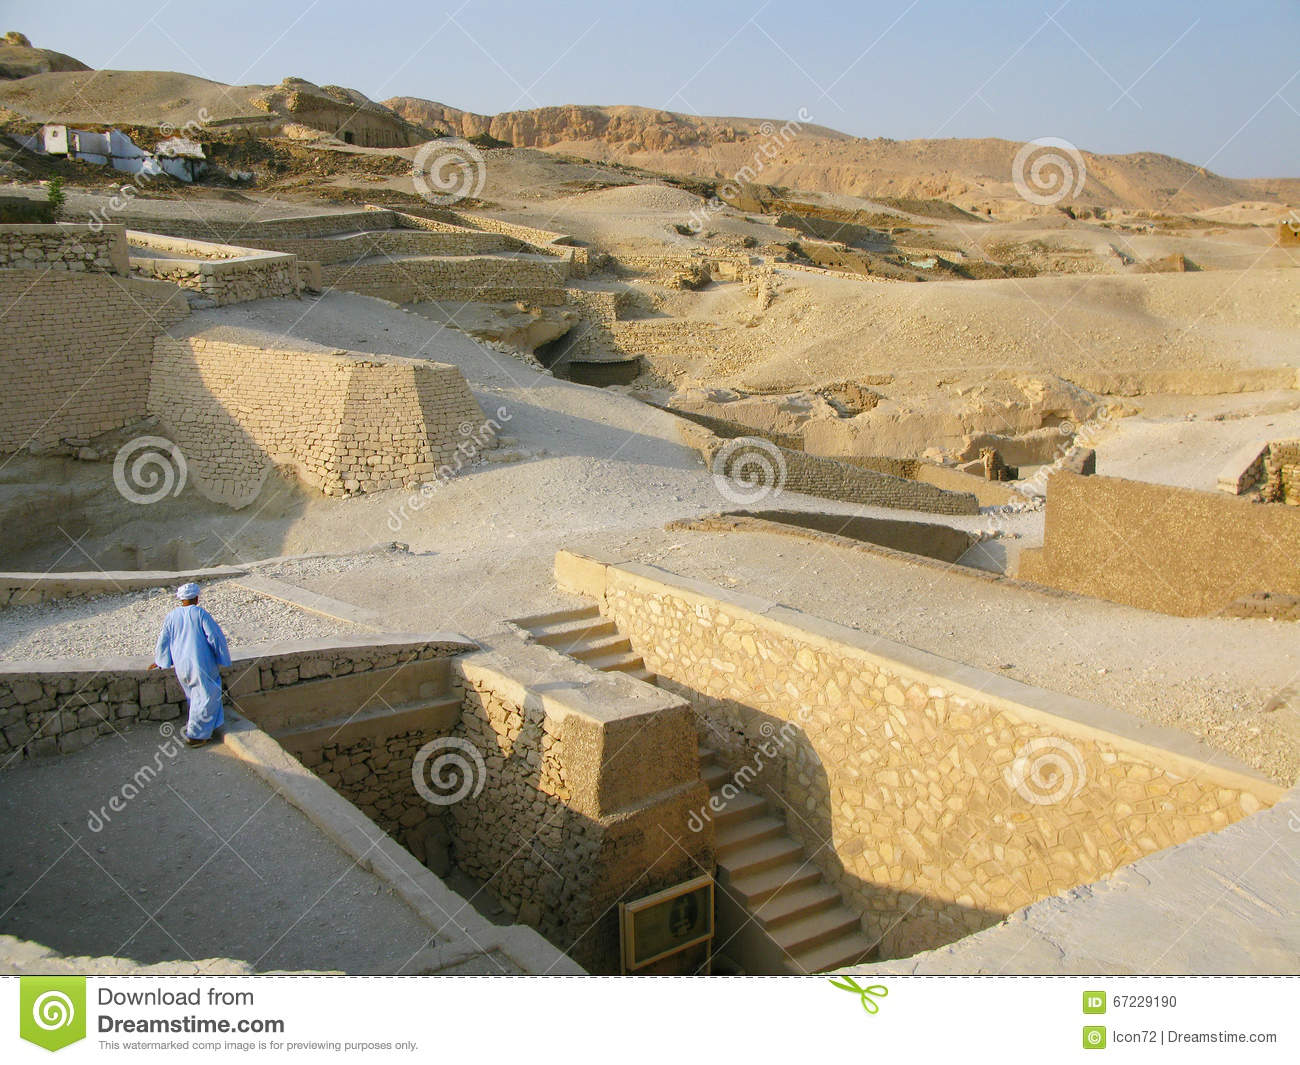 Luxor, Egypt: Tomb of Ramose at the ancient necropolis of the nobles in Thebes